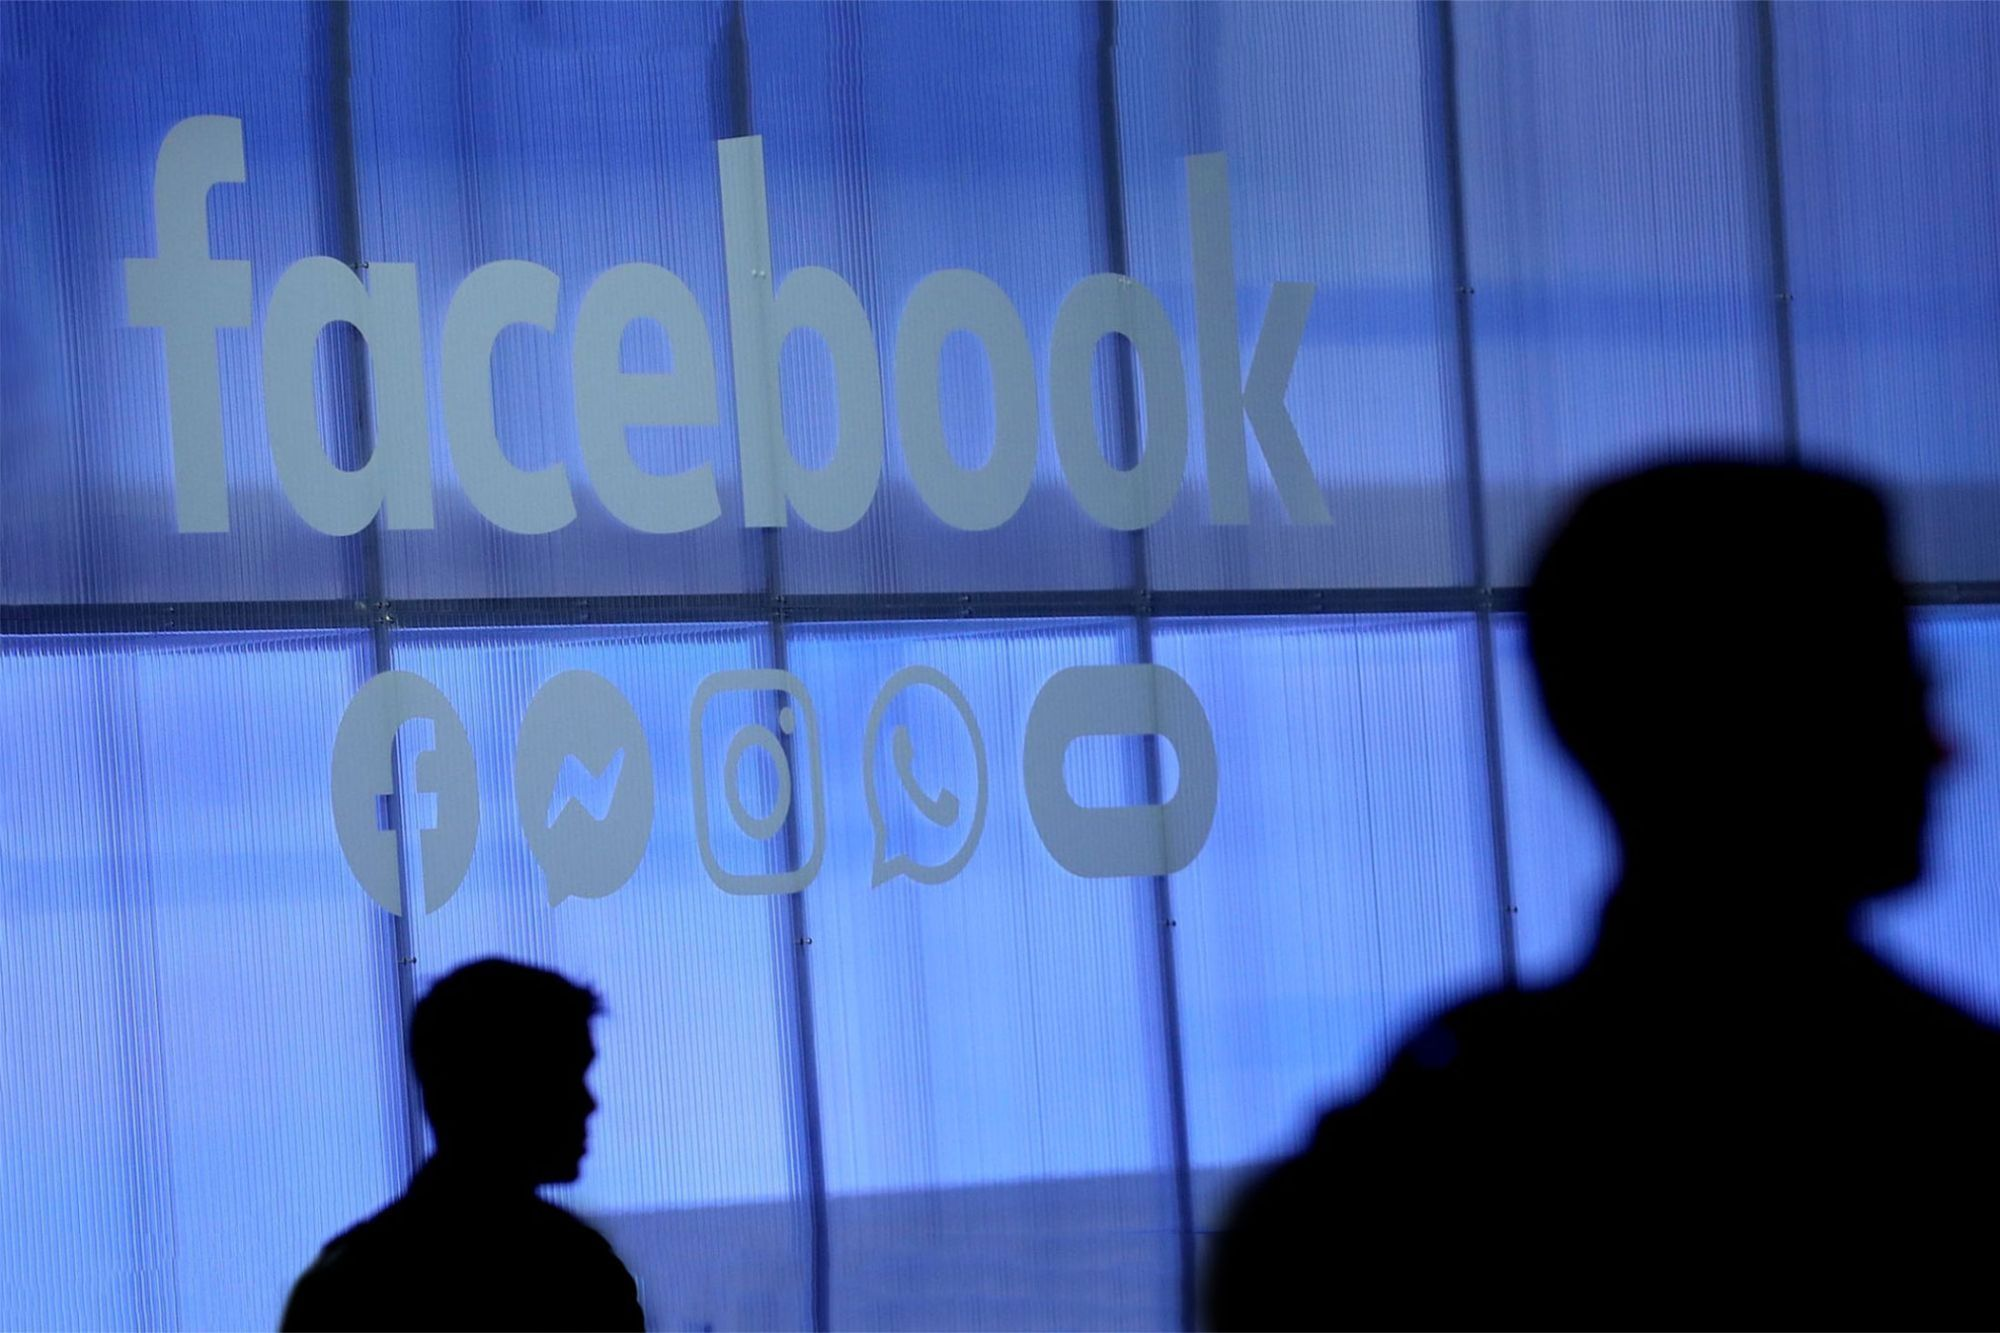 Facebook Denies Being a Social Network in Lawsuit Response